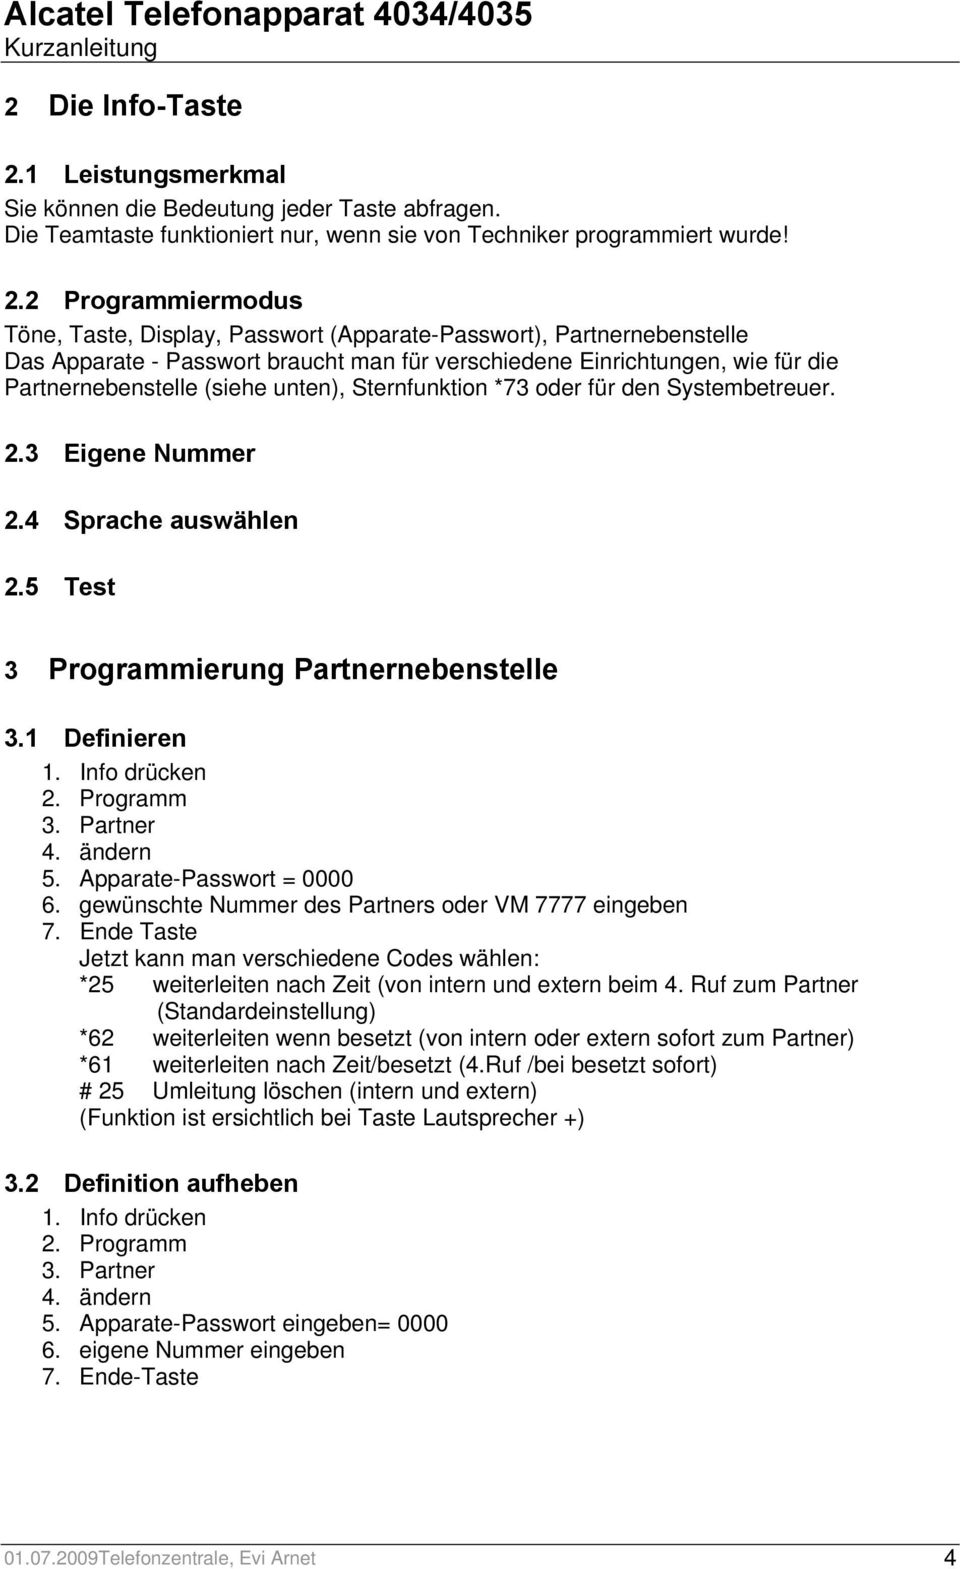 2 Programmiermodus Töne, Taste, Display, Passwort (Apparate-Passwort), Partnernebenstelle Das Apparate - Passwort braucht man für verschiedene Einrichtungen, wie für die Partnernebenstelle (siehe